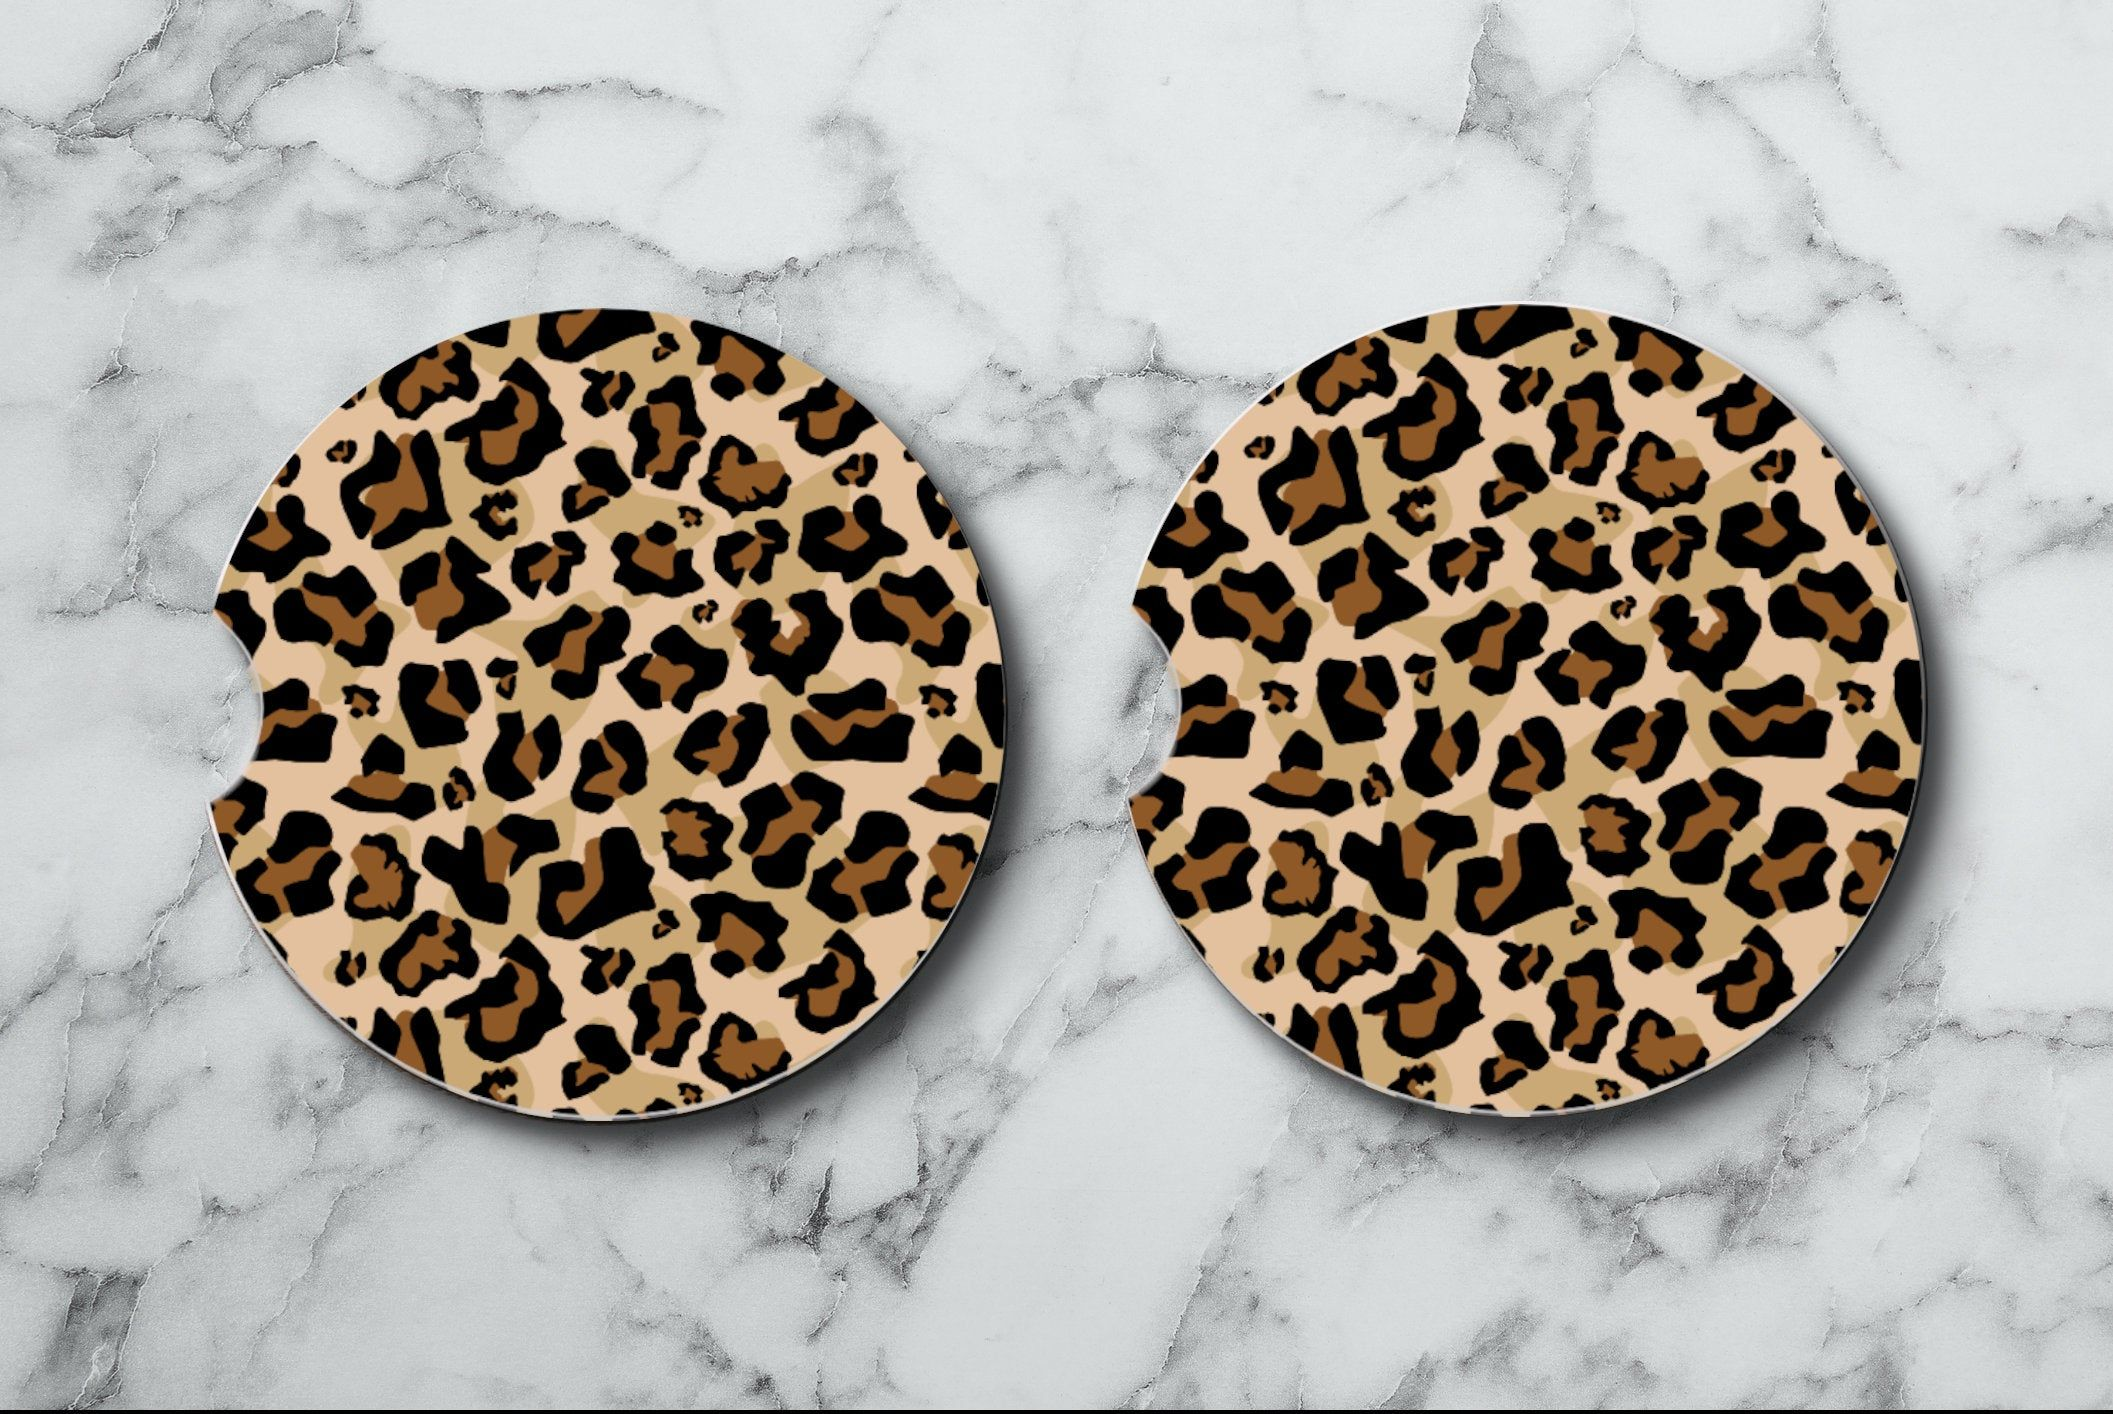 Car Coasters Set 2 Absorbent Car Coasters Fabric Top Rubber Cup Holders Cup Coasters Car Bling Cheetah Print Car Coasters In 2021 Car Coasters Car Coasters Cup Holders Cute Car Accessories [ 1414 x 2113 Pixel ]